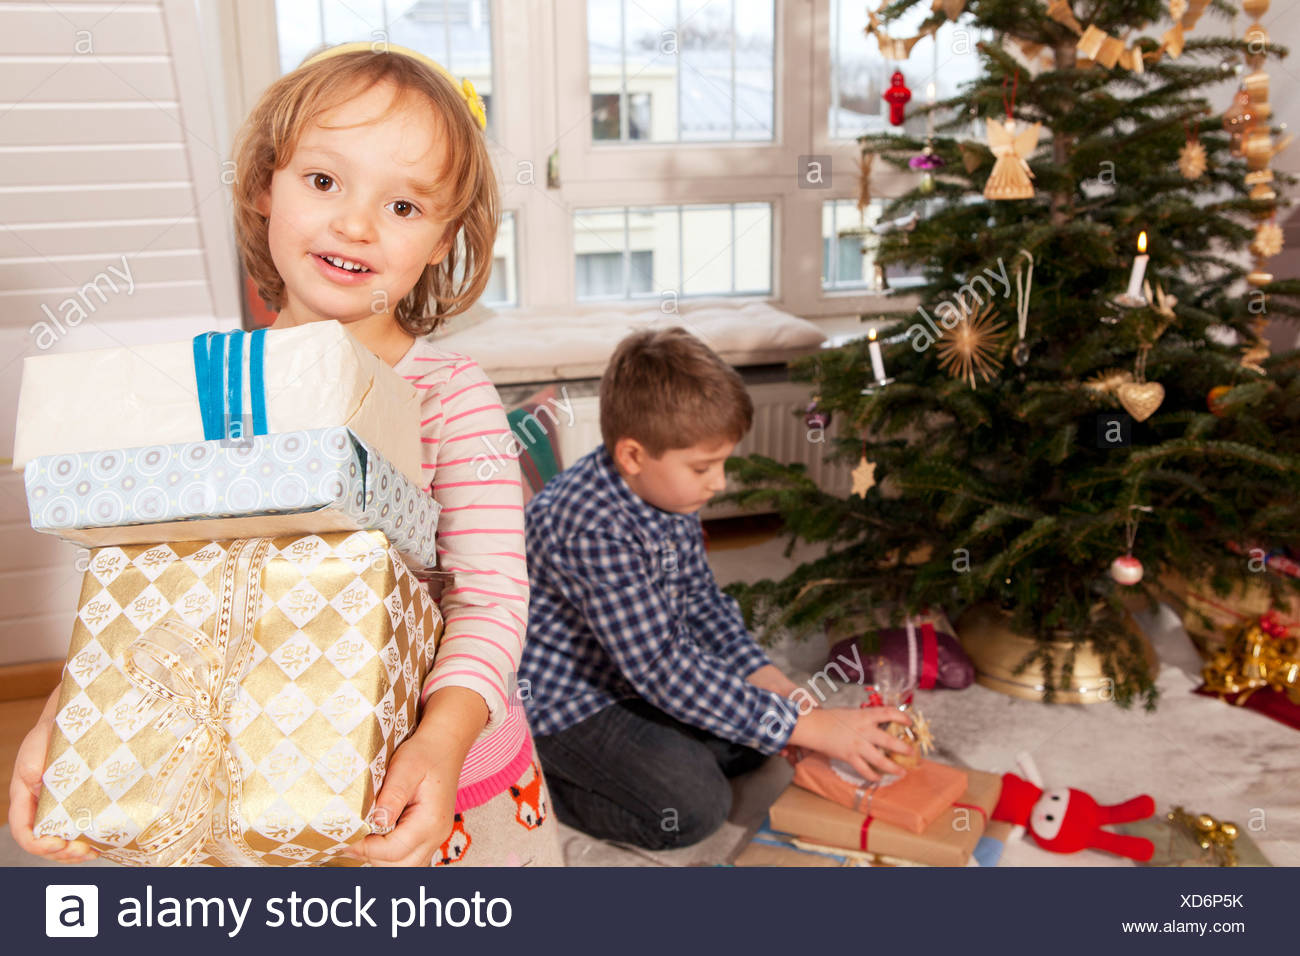 Little girl holding gift boxes, brother in background, Munich, Bavaria, Germany Stock Photo